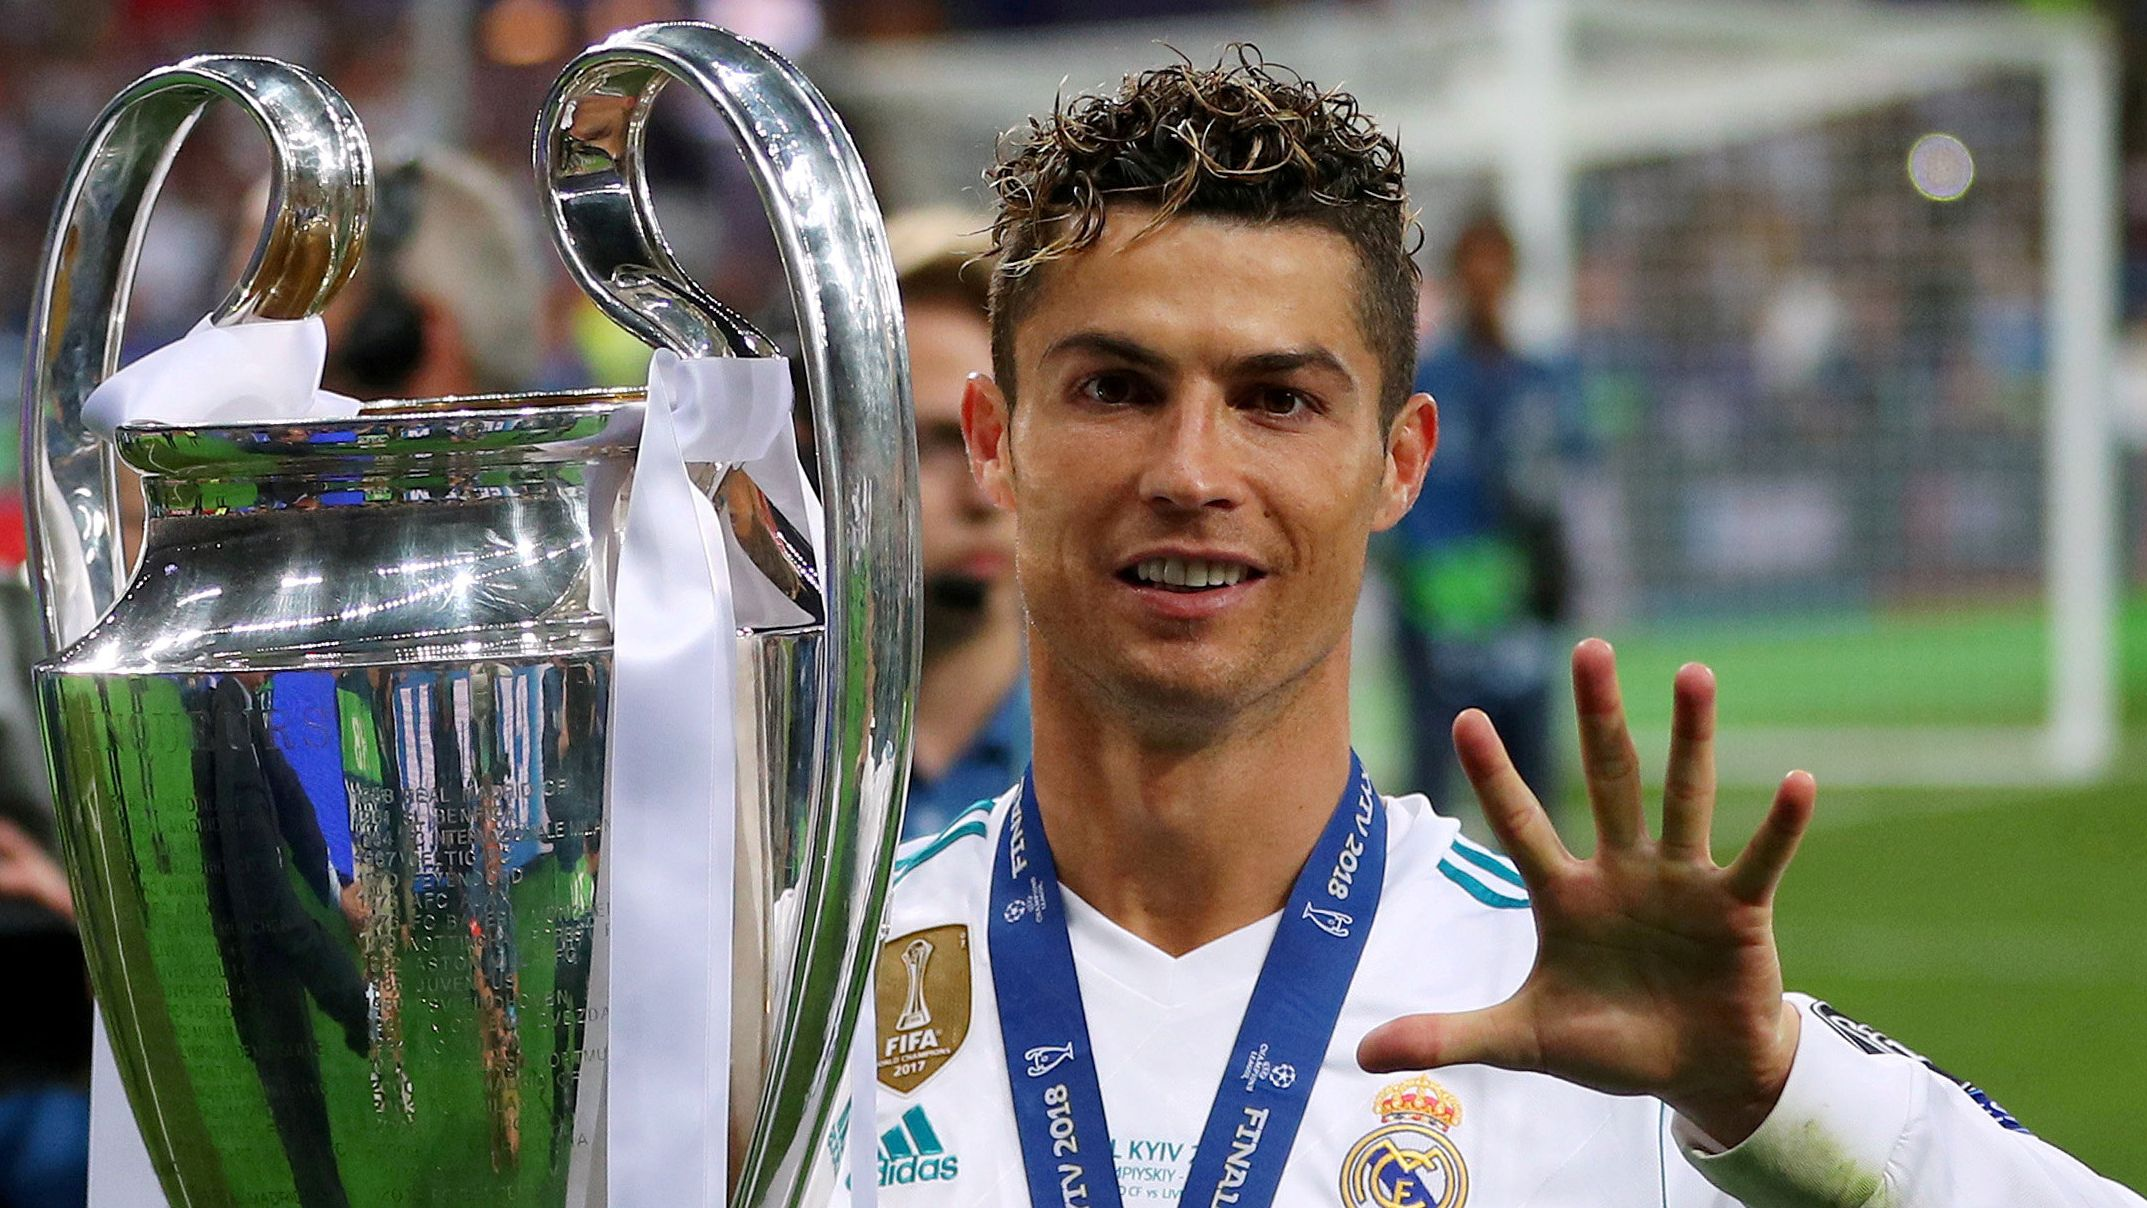 Cristiano Ronaldo y los guiños al Real Madrid que dispararon los rumores de regreso (REUTERS/Hannah McKay/File Photo)